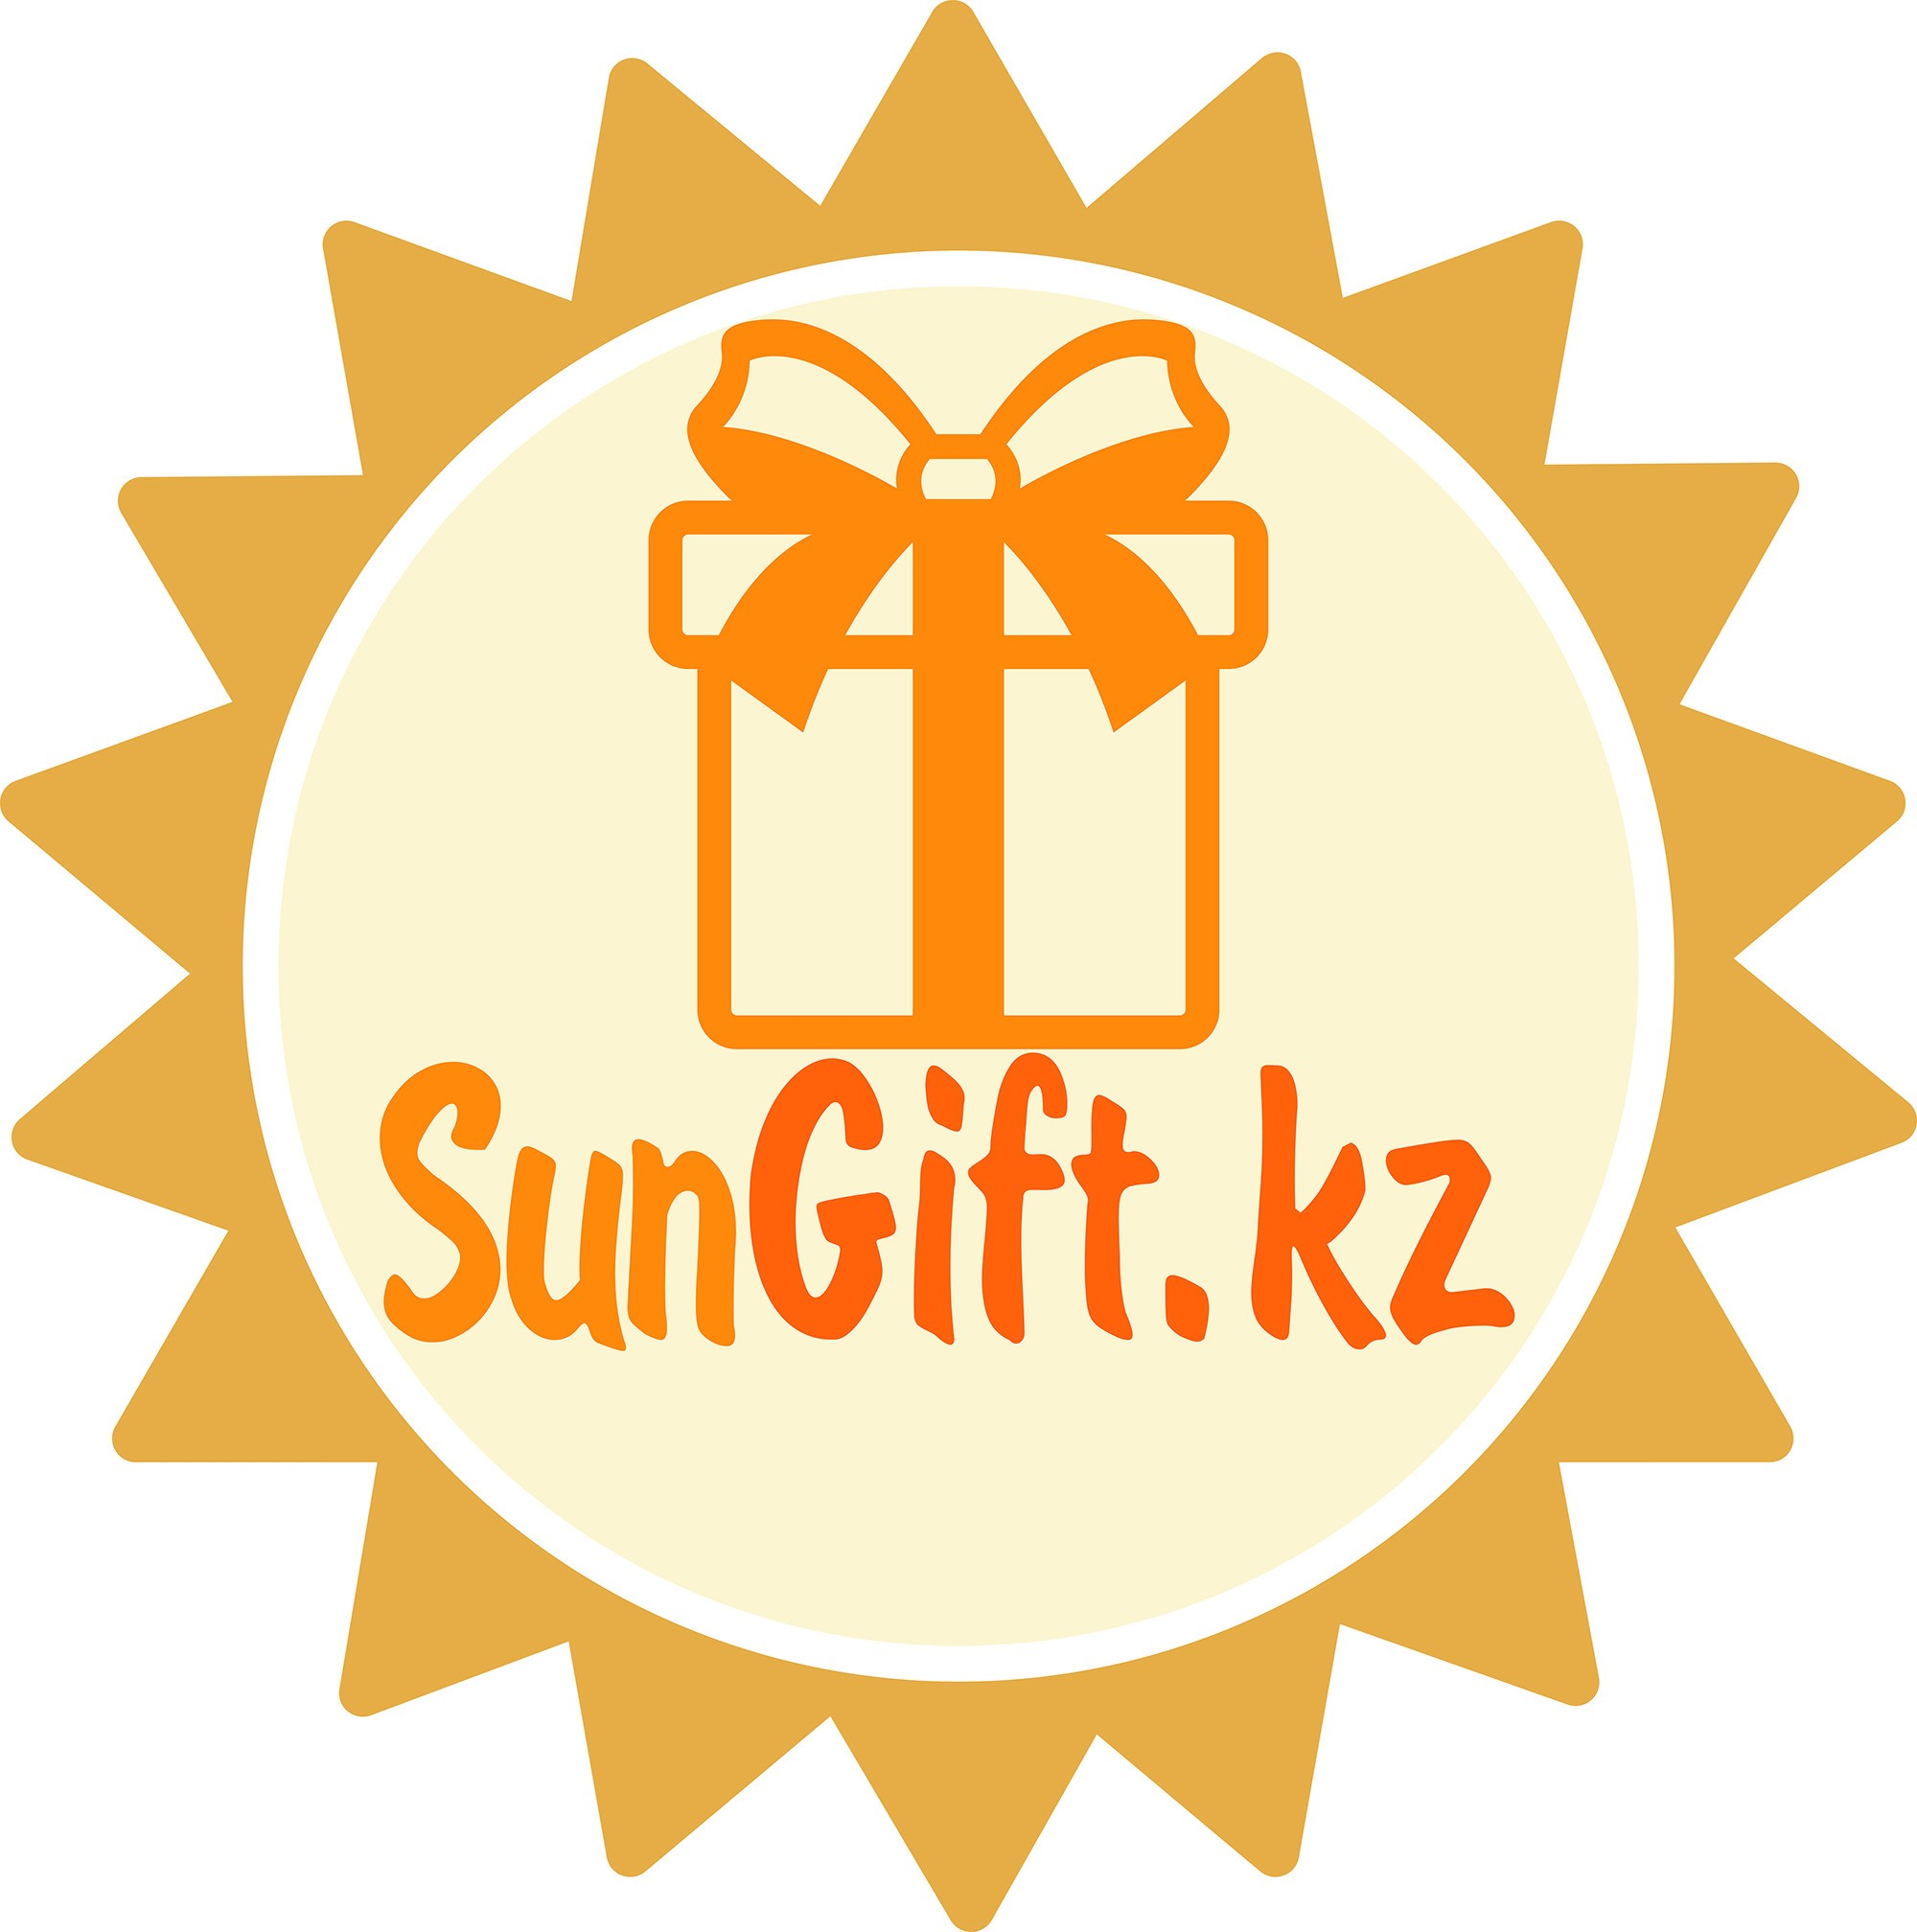 SunGift.kz